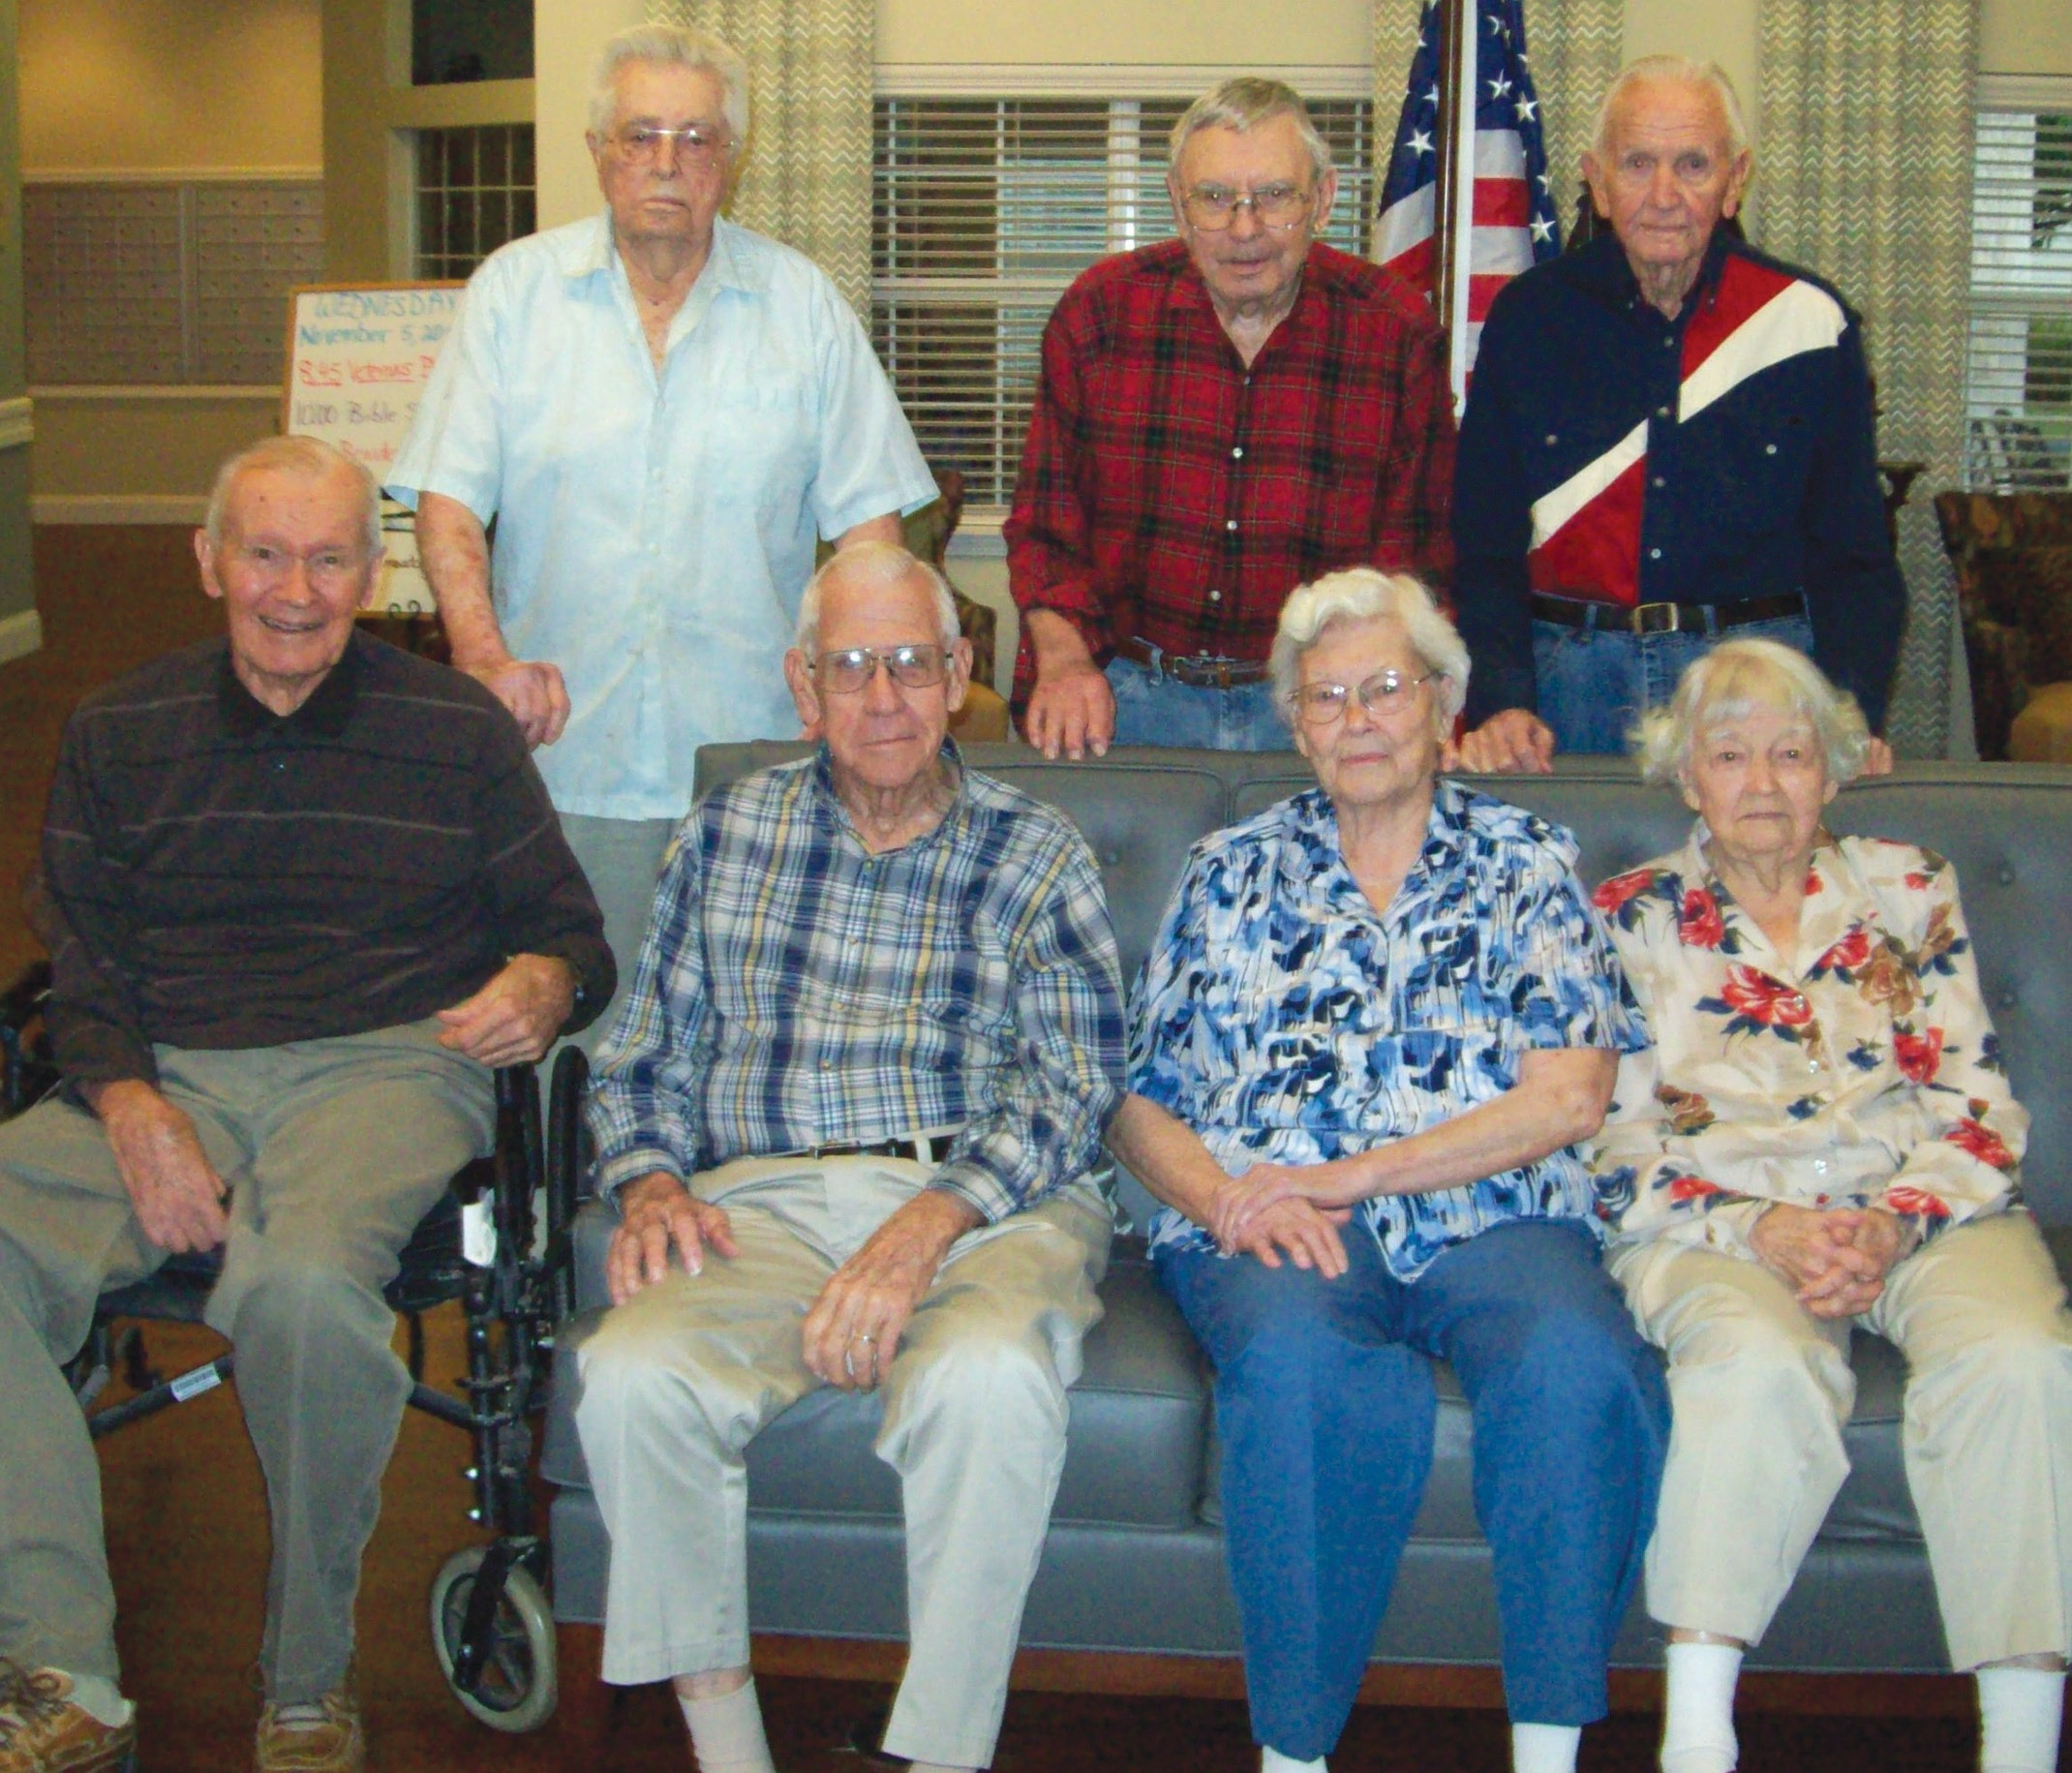 These residents of Argent Court Assisted Living in Jourdanton are also proud U.S. veterans. From left to right are, seated: Fred Moczygemba, Ed Scogin, Nettie Mae Wells and Maureen Davis and standing: Laddie Sefcik, Alfred Korus and Carl Morris.